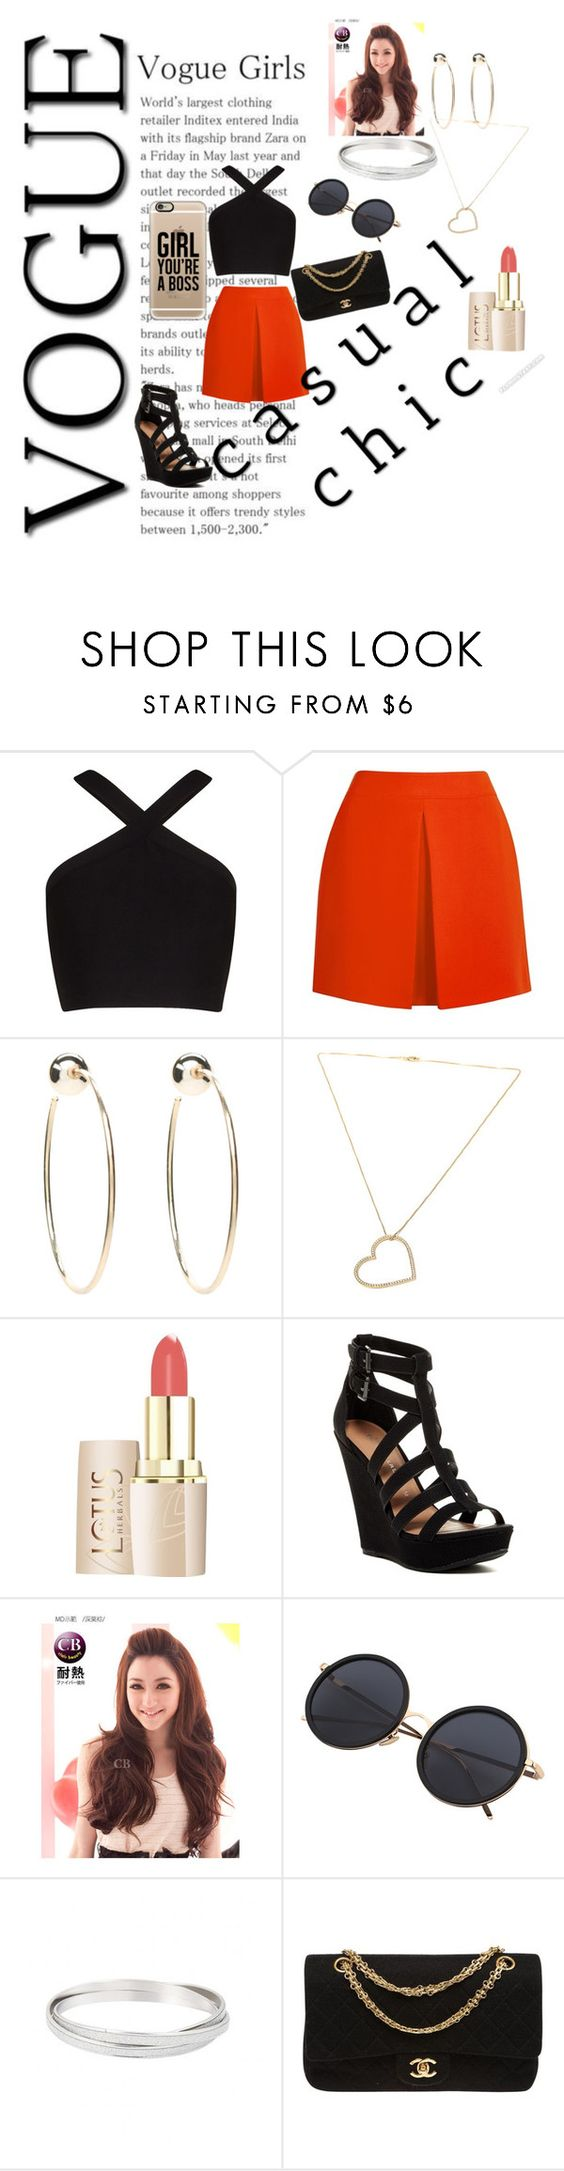 """BO$$"" by crazygurl15 ❤ liked on Polyvore featuring BCBGMAXAZRIA, McQ by Alexander McQueen, Bebe, SeeMe, Chinese Laundry, Clair Beauty, Chanel and Casetify"